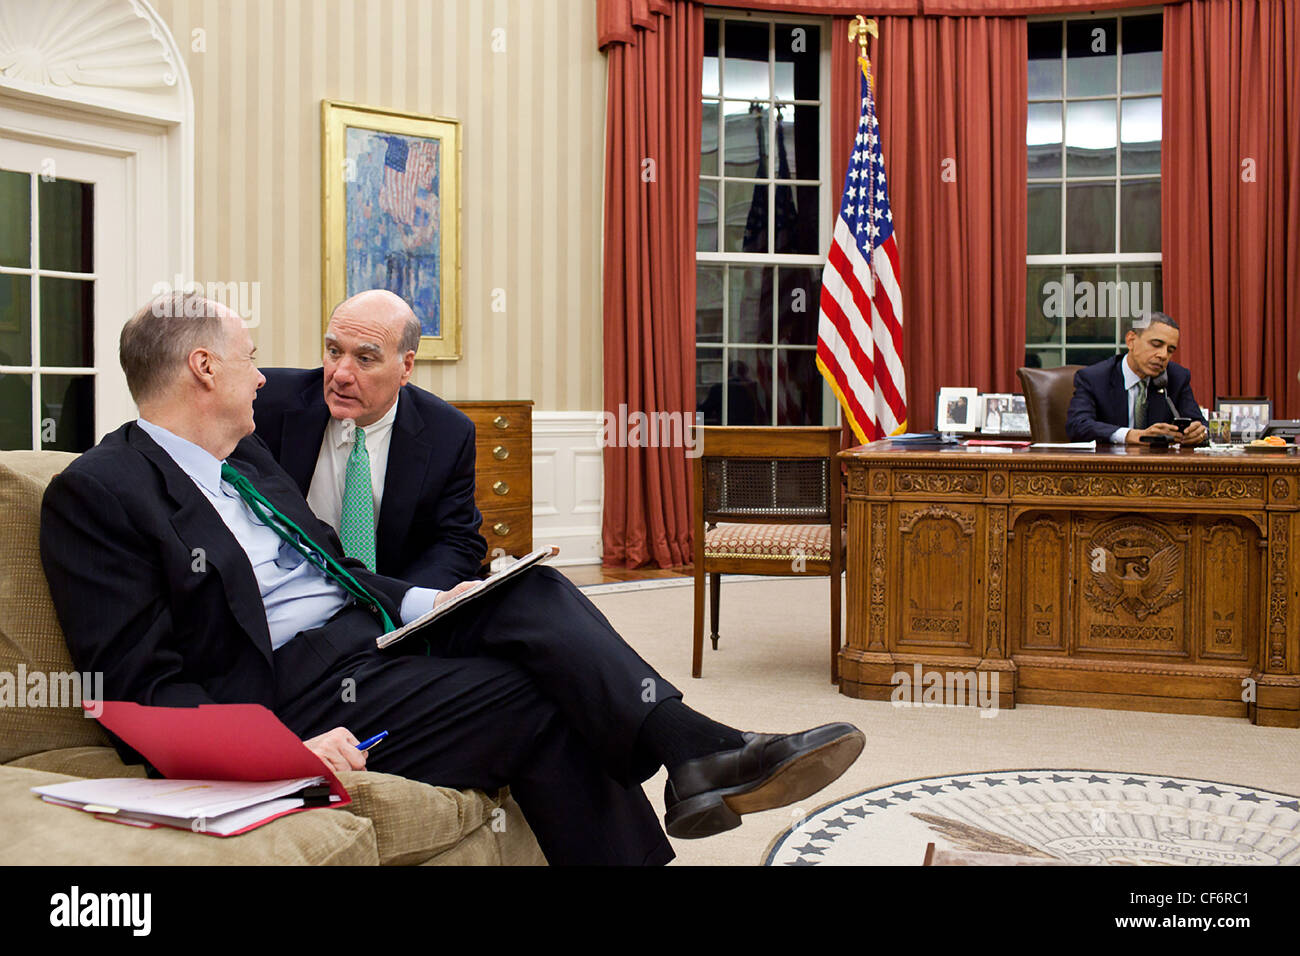 Chief of Staff Bill Daley confers with National Security Advisor Tom Donilon, left, as President Barack Obama talks - Stock Image